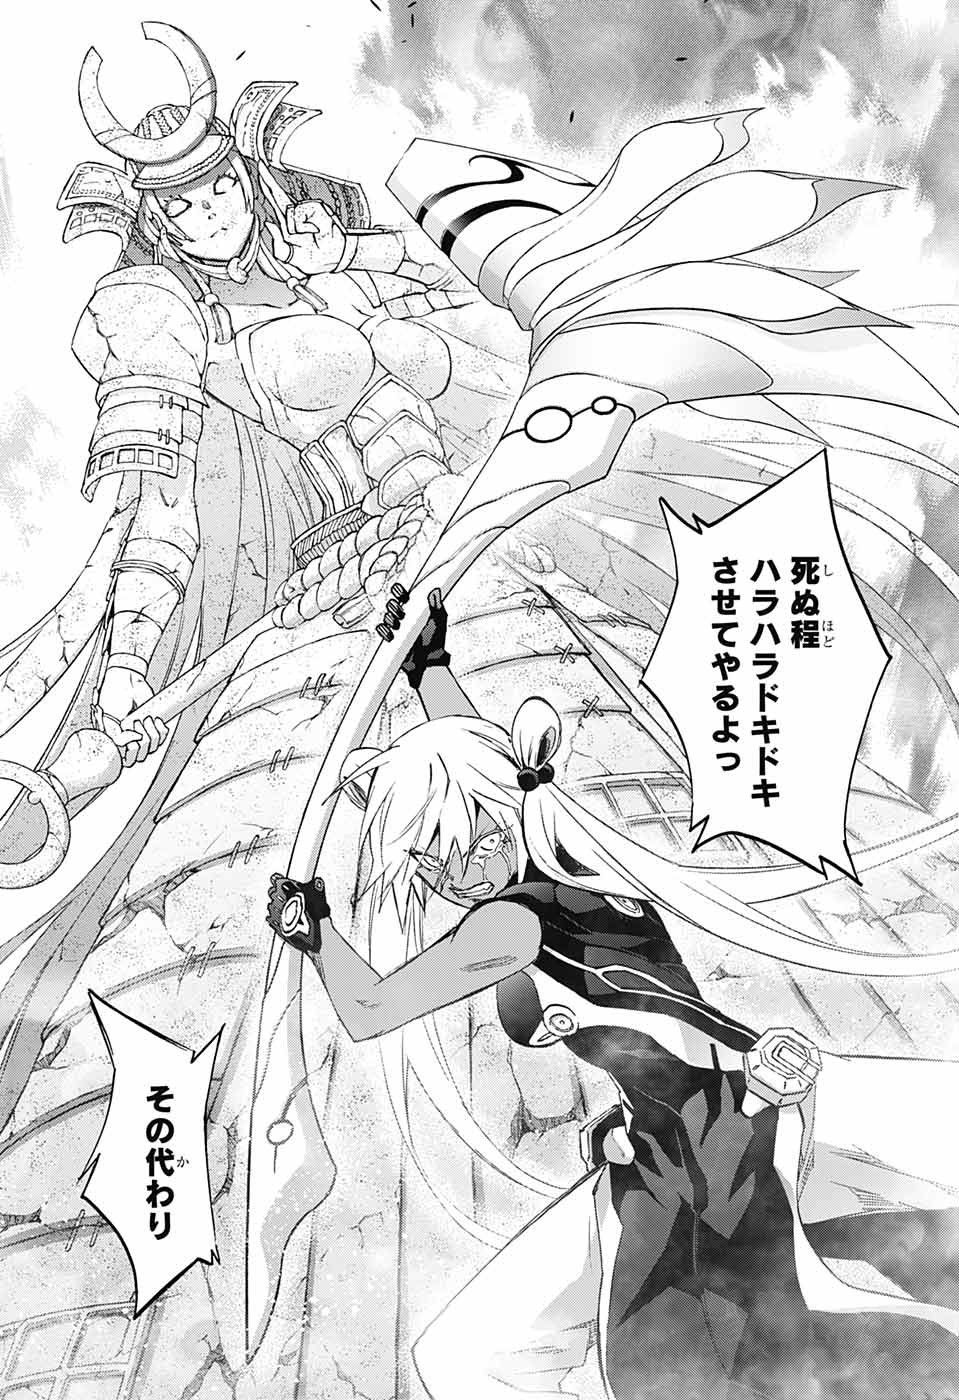 Sousei no Onmyouji - Raw Chapter 55 - LHScan net | Anime & Manga Art